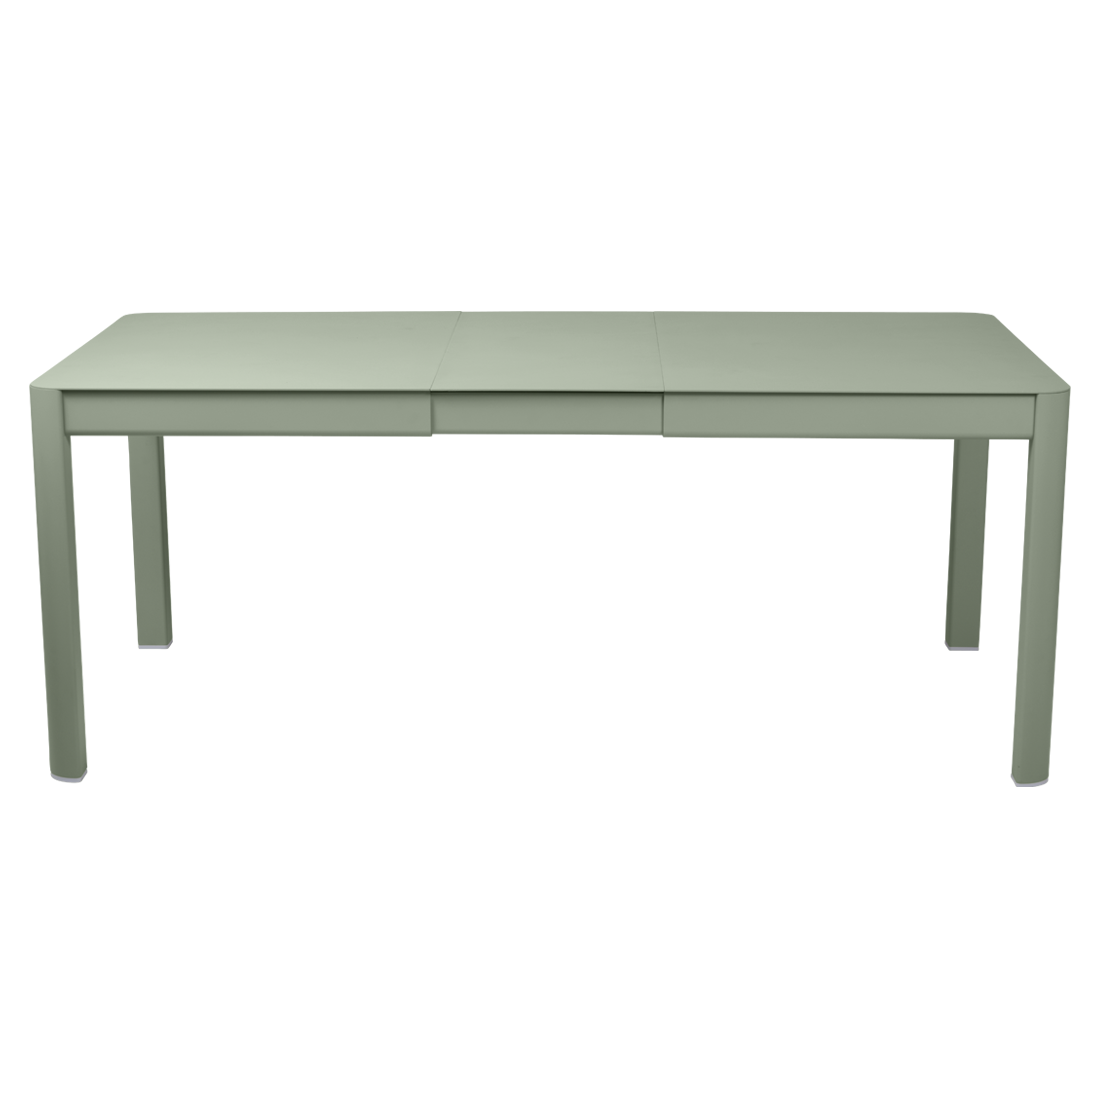 table de jardin verte, table metal allonge, table metal a rallonge, table metal rectangulaire, table fermob allonge